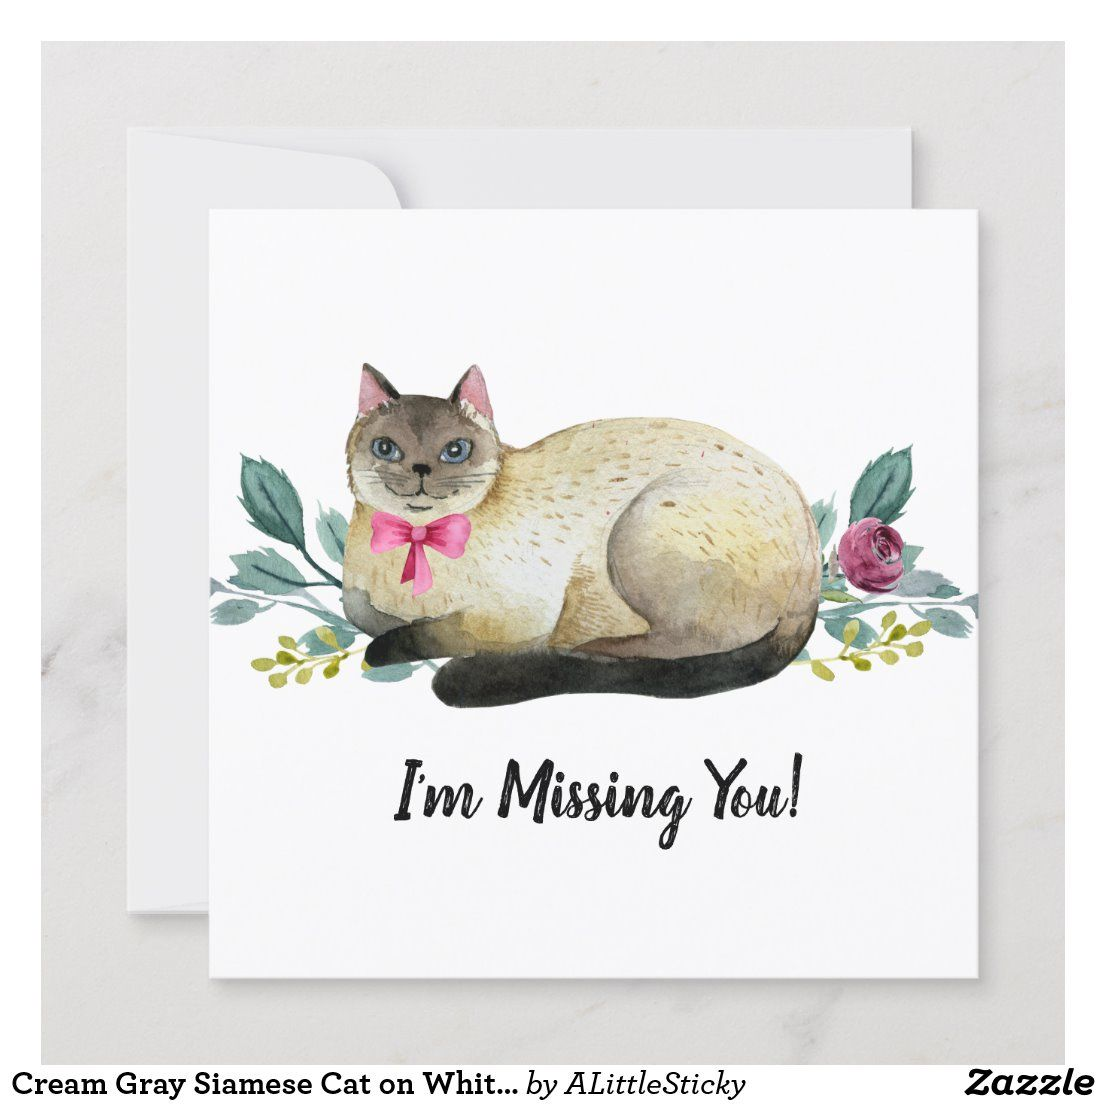 Cream Gray Siamese Cat On White Missing You Zazzle Com In 2020 Siamese Cats Miss You Cards Siamese